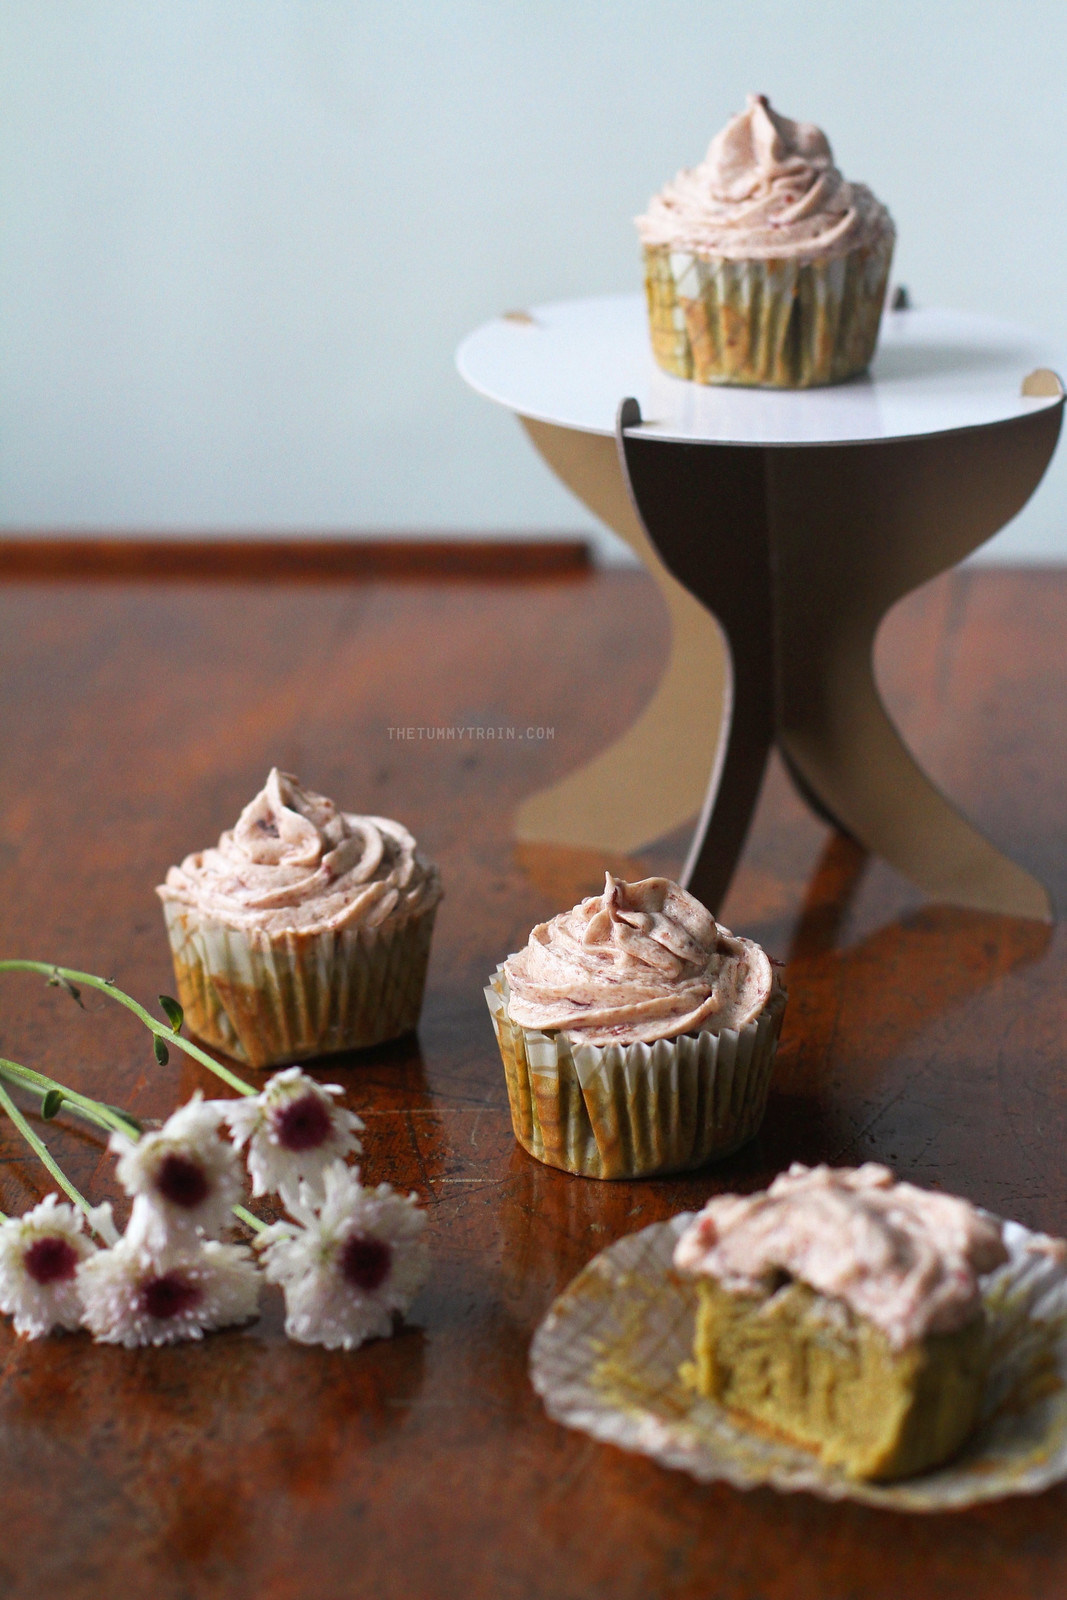 26745597105 f765a3db93 h - These Matcha Cupcakes with Red Bean Frosting sum up my sweet love [VIDEO]